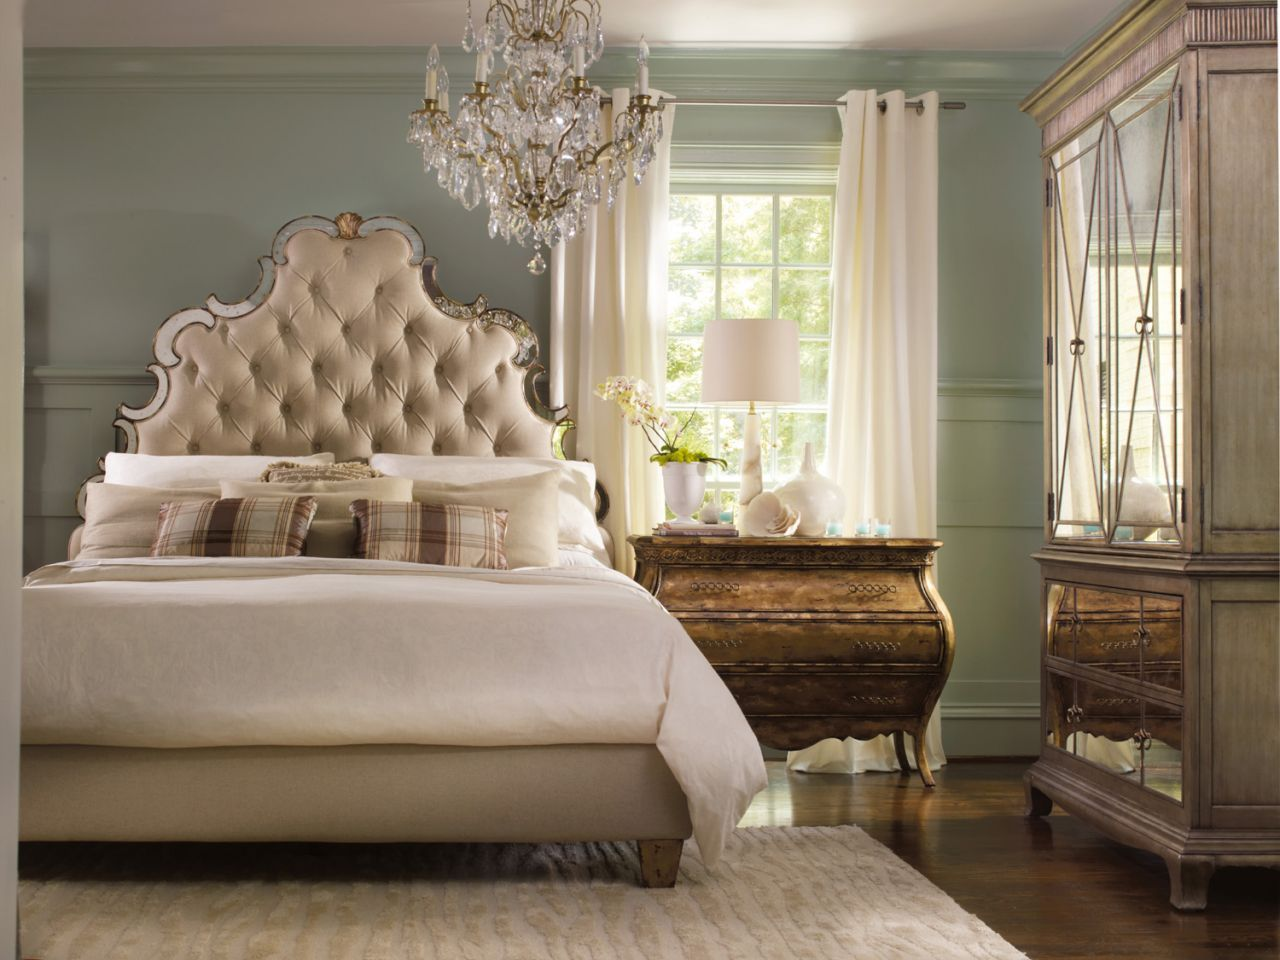 Sanctuary Queen Tufted Headboard - Bling, Hooker Furniture ...